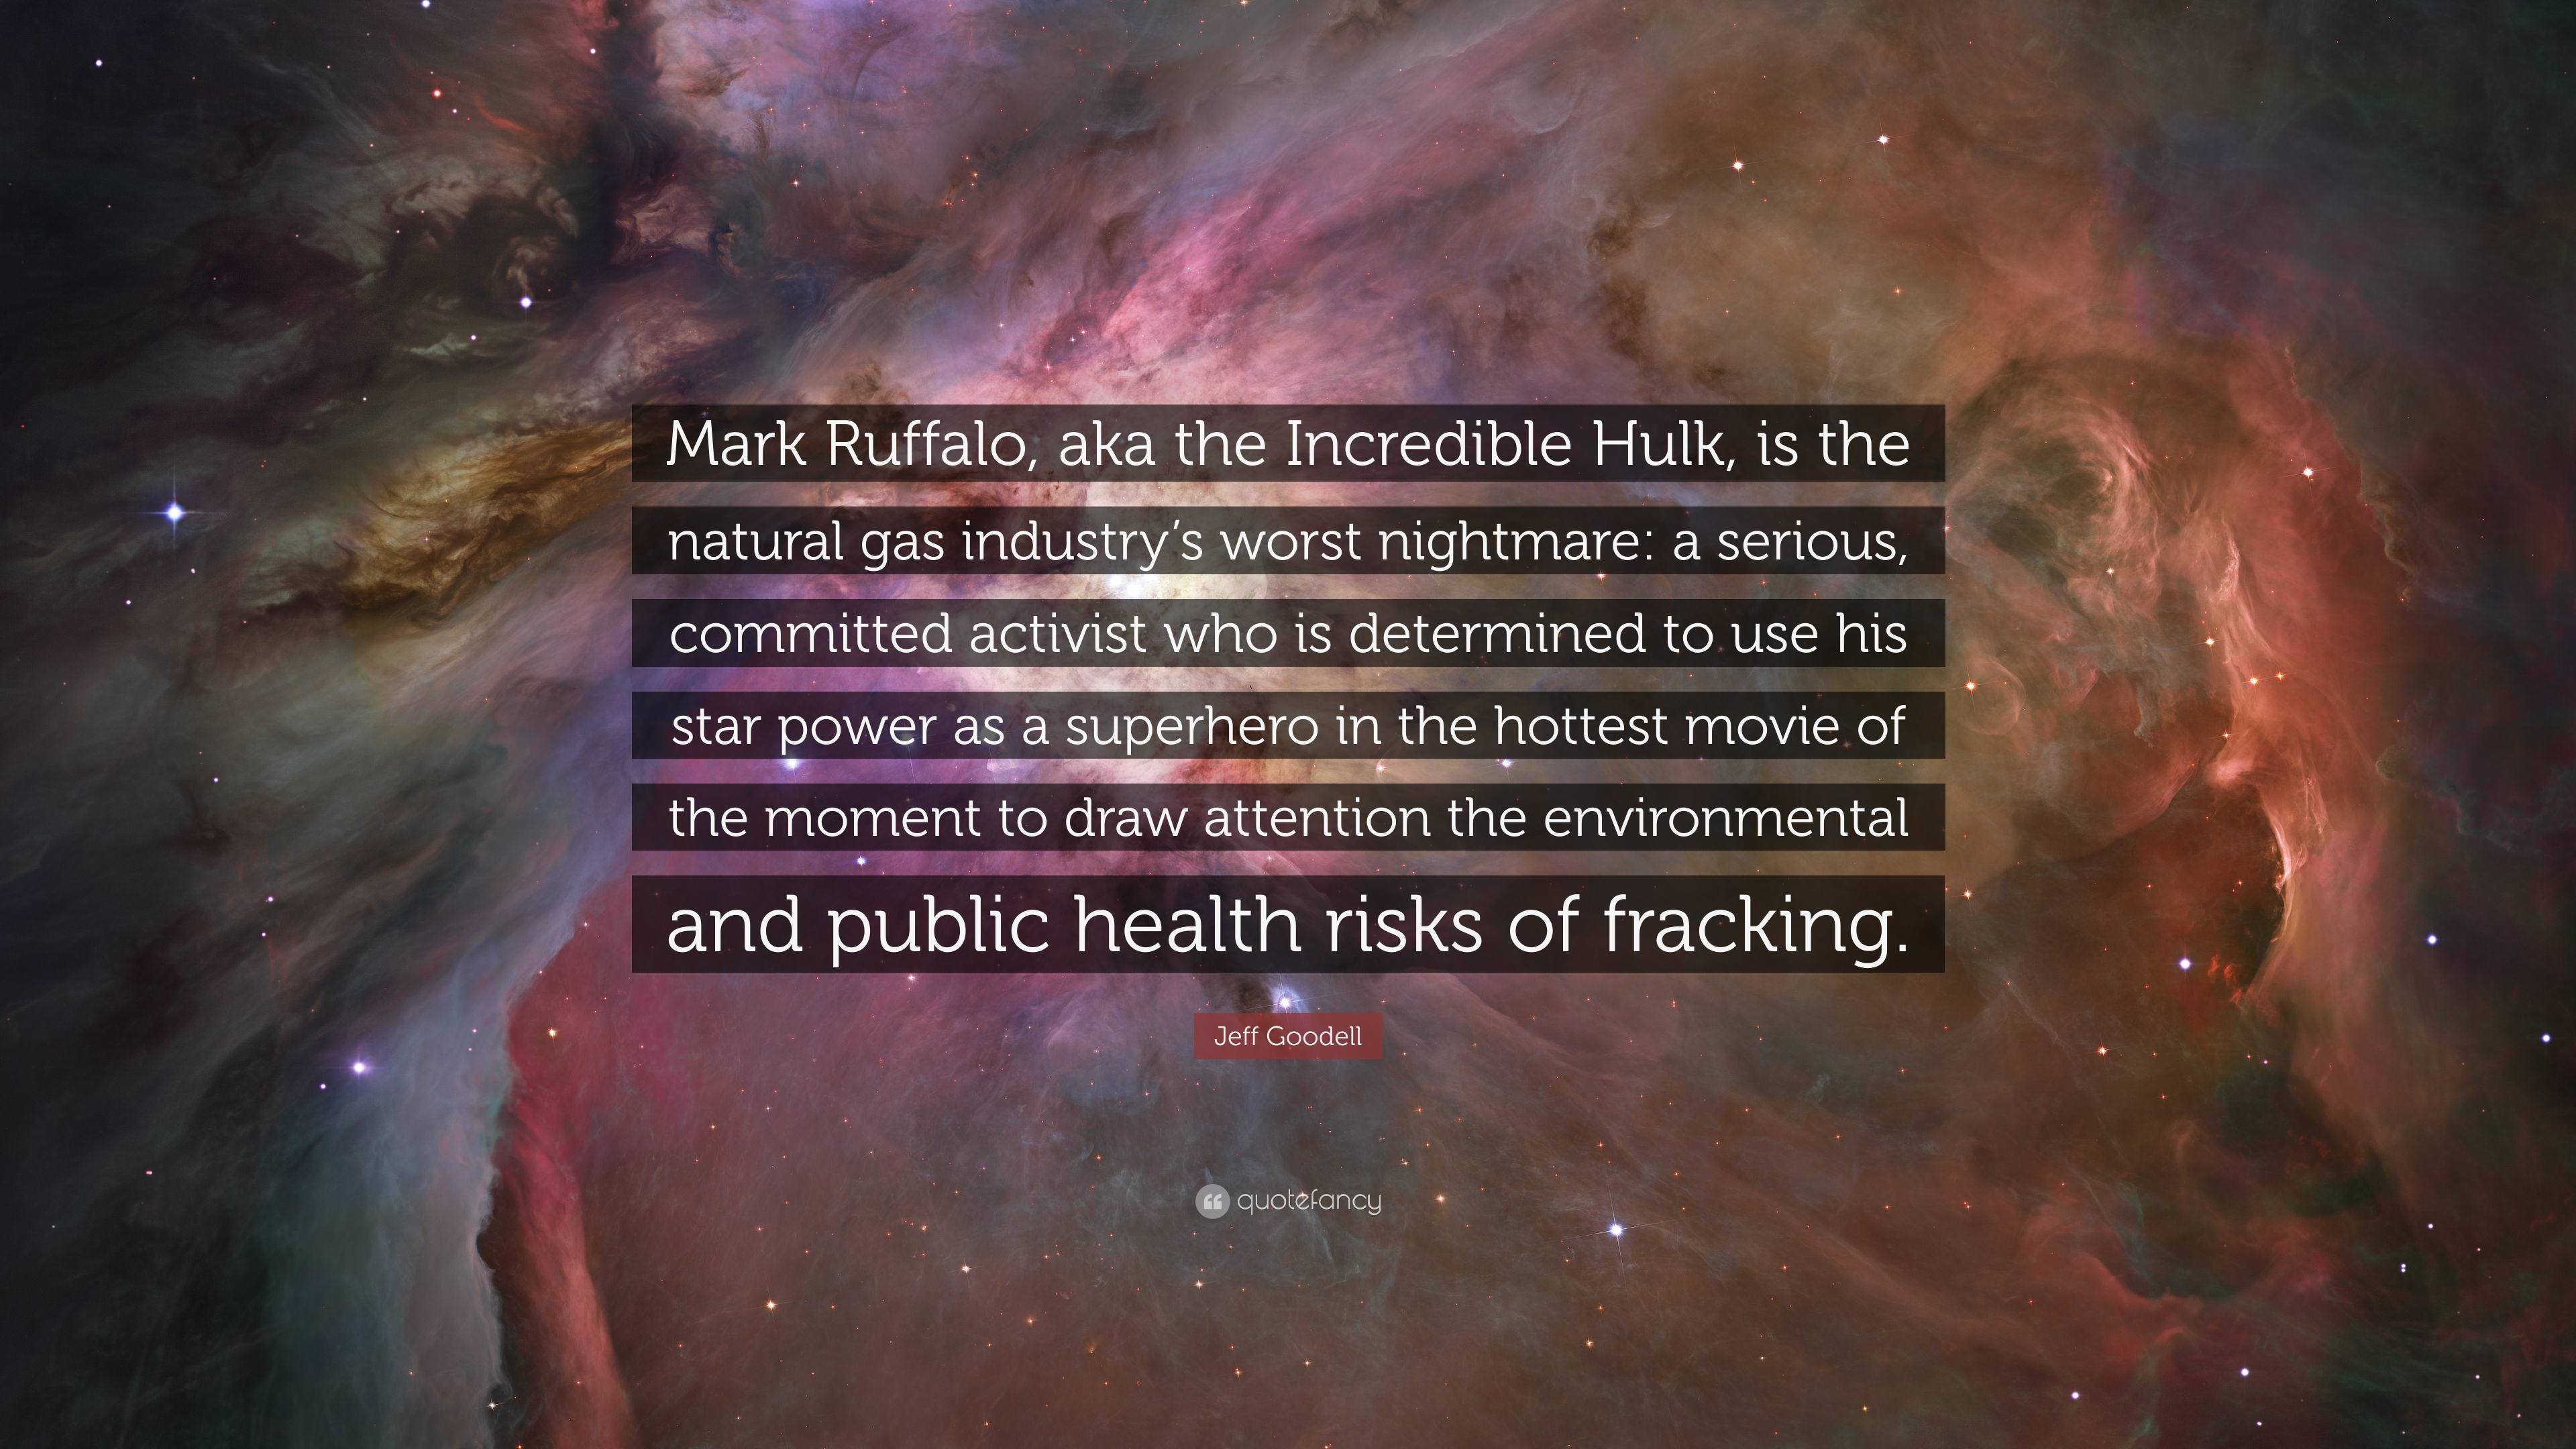 Hulk Quotes | Jeff Goodell Quote Mark Ruffalo Aka The Incredible Hulk Is The